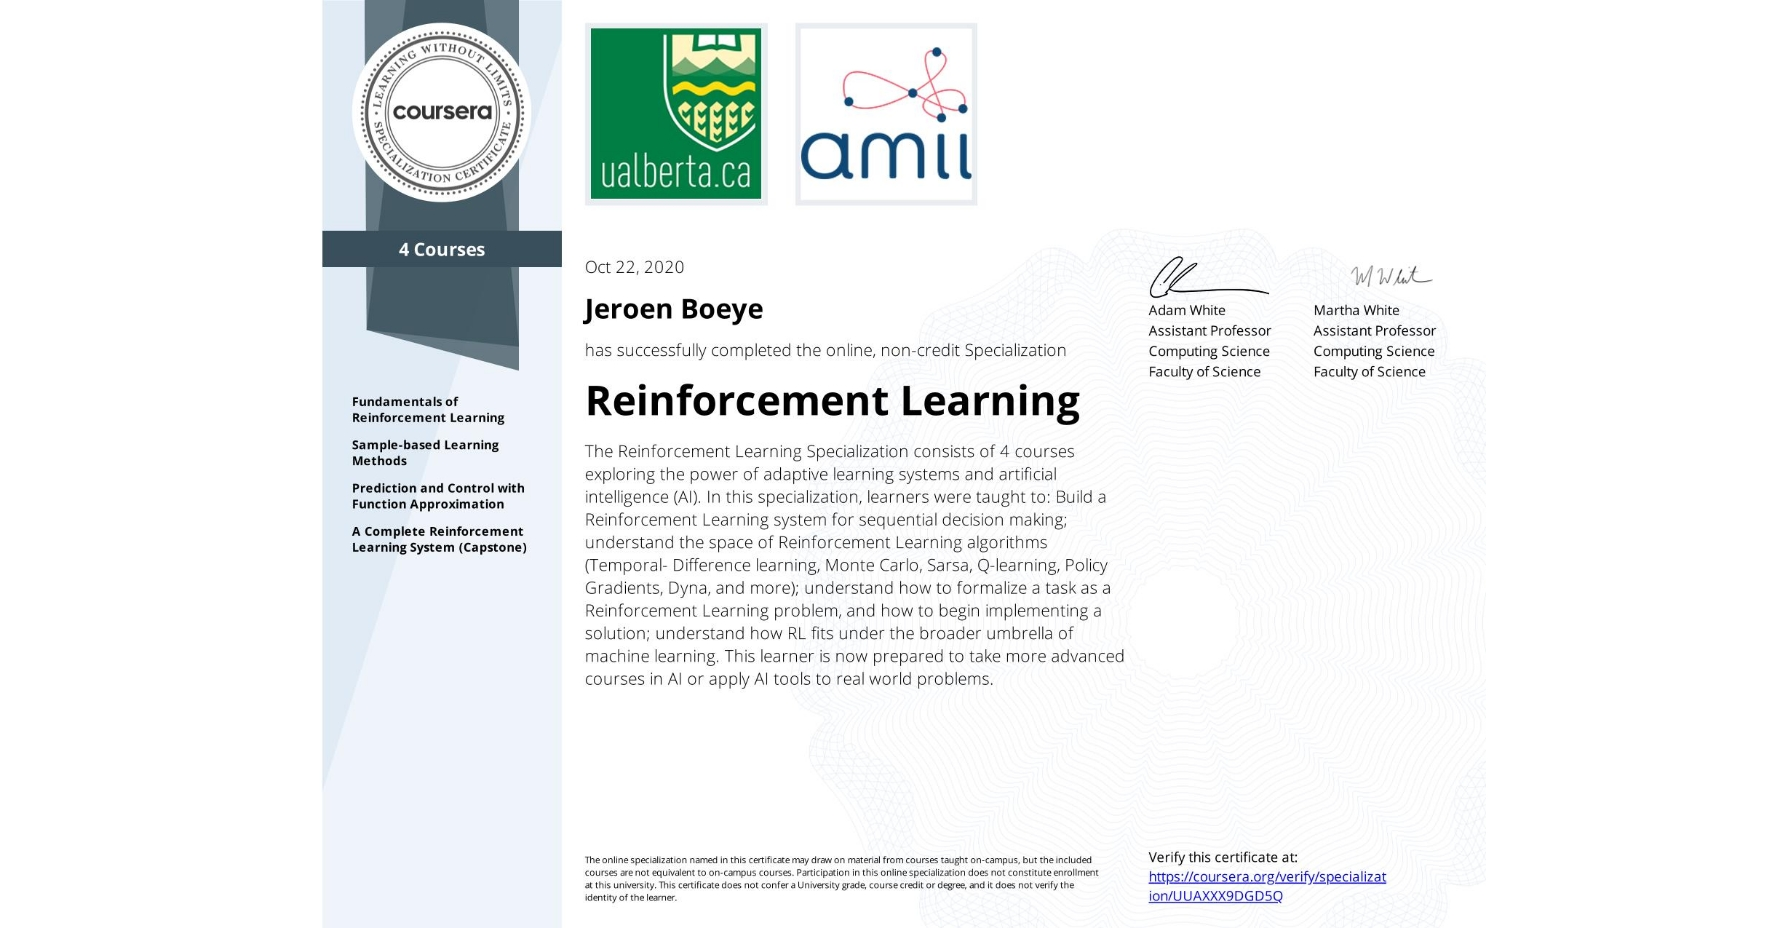 View certificate for Jeroen Boeye, Reinforcement Learning, offered through Coursera. The Reinforcement Learning Specialization consists of 4 courses exploring the power of adaptive learning systems and artificial intelligence (AI).  In this specialization, learners were taught to:  Build a Reinforcement Learning system for sequential decision making; understand the space of Reinforcement Learning algorithms (Temporal- Difference learning, Monte Carlo, Sarsa, Q-learning, Policy Gradients, Dyna, and more); understand how to formalize a task as a Reinforcement Learning problem, and how to begin implementing a solution; understand how RL fits under the broader umbrella of machine learning.  This learner is now prepared to take more advanced courses in AI or apply AI tools to real world problems.